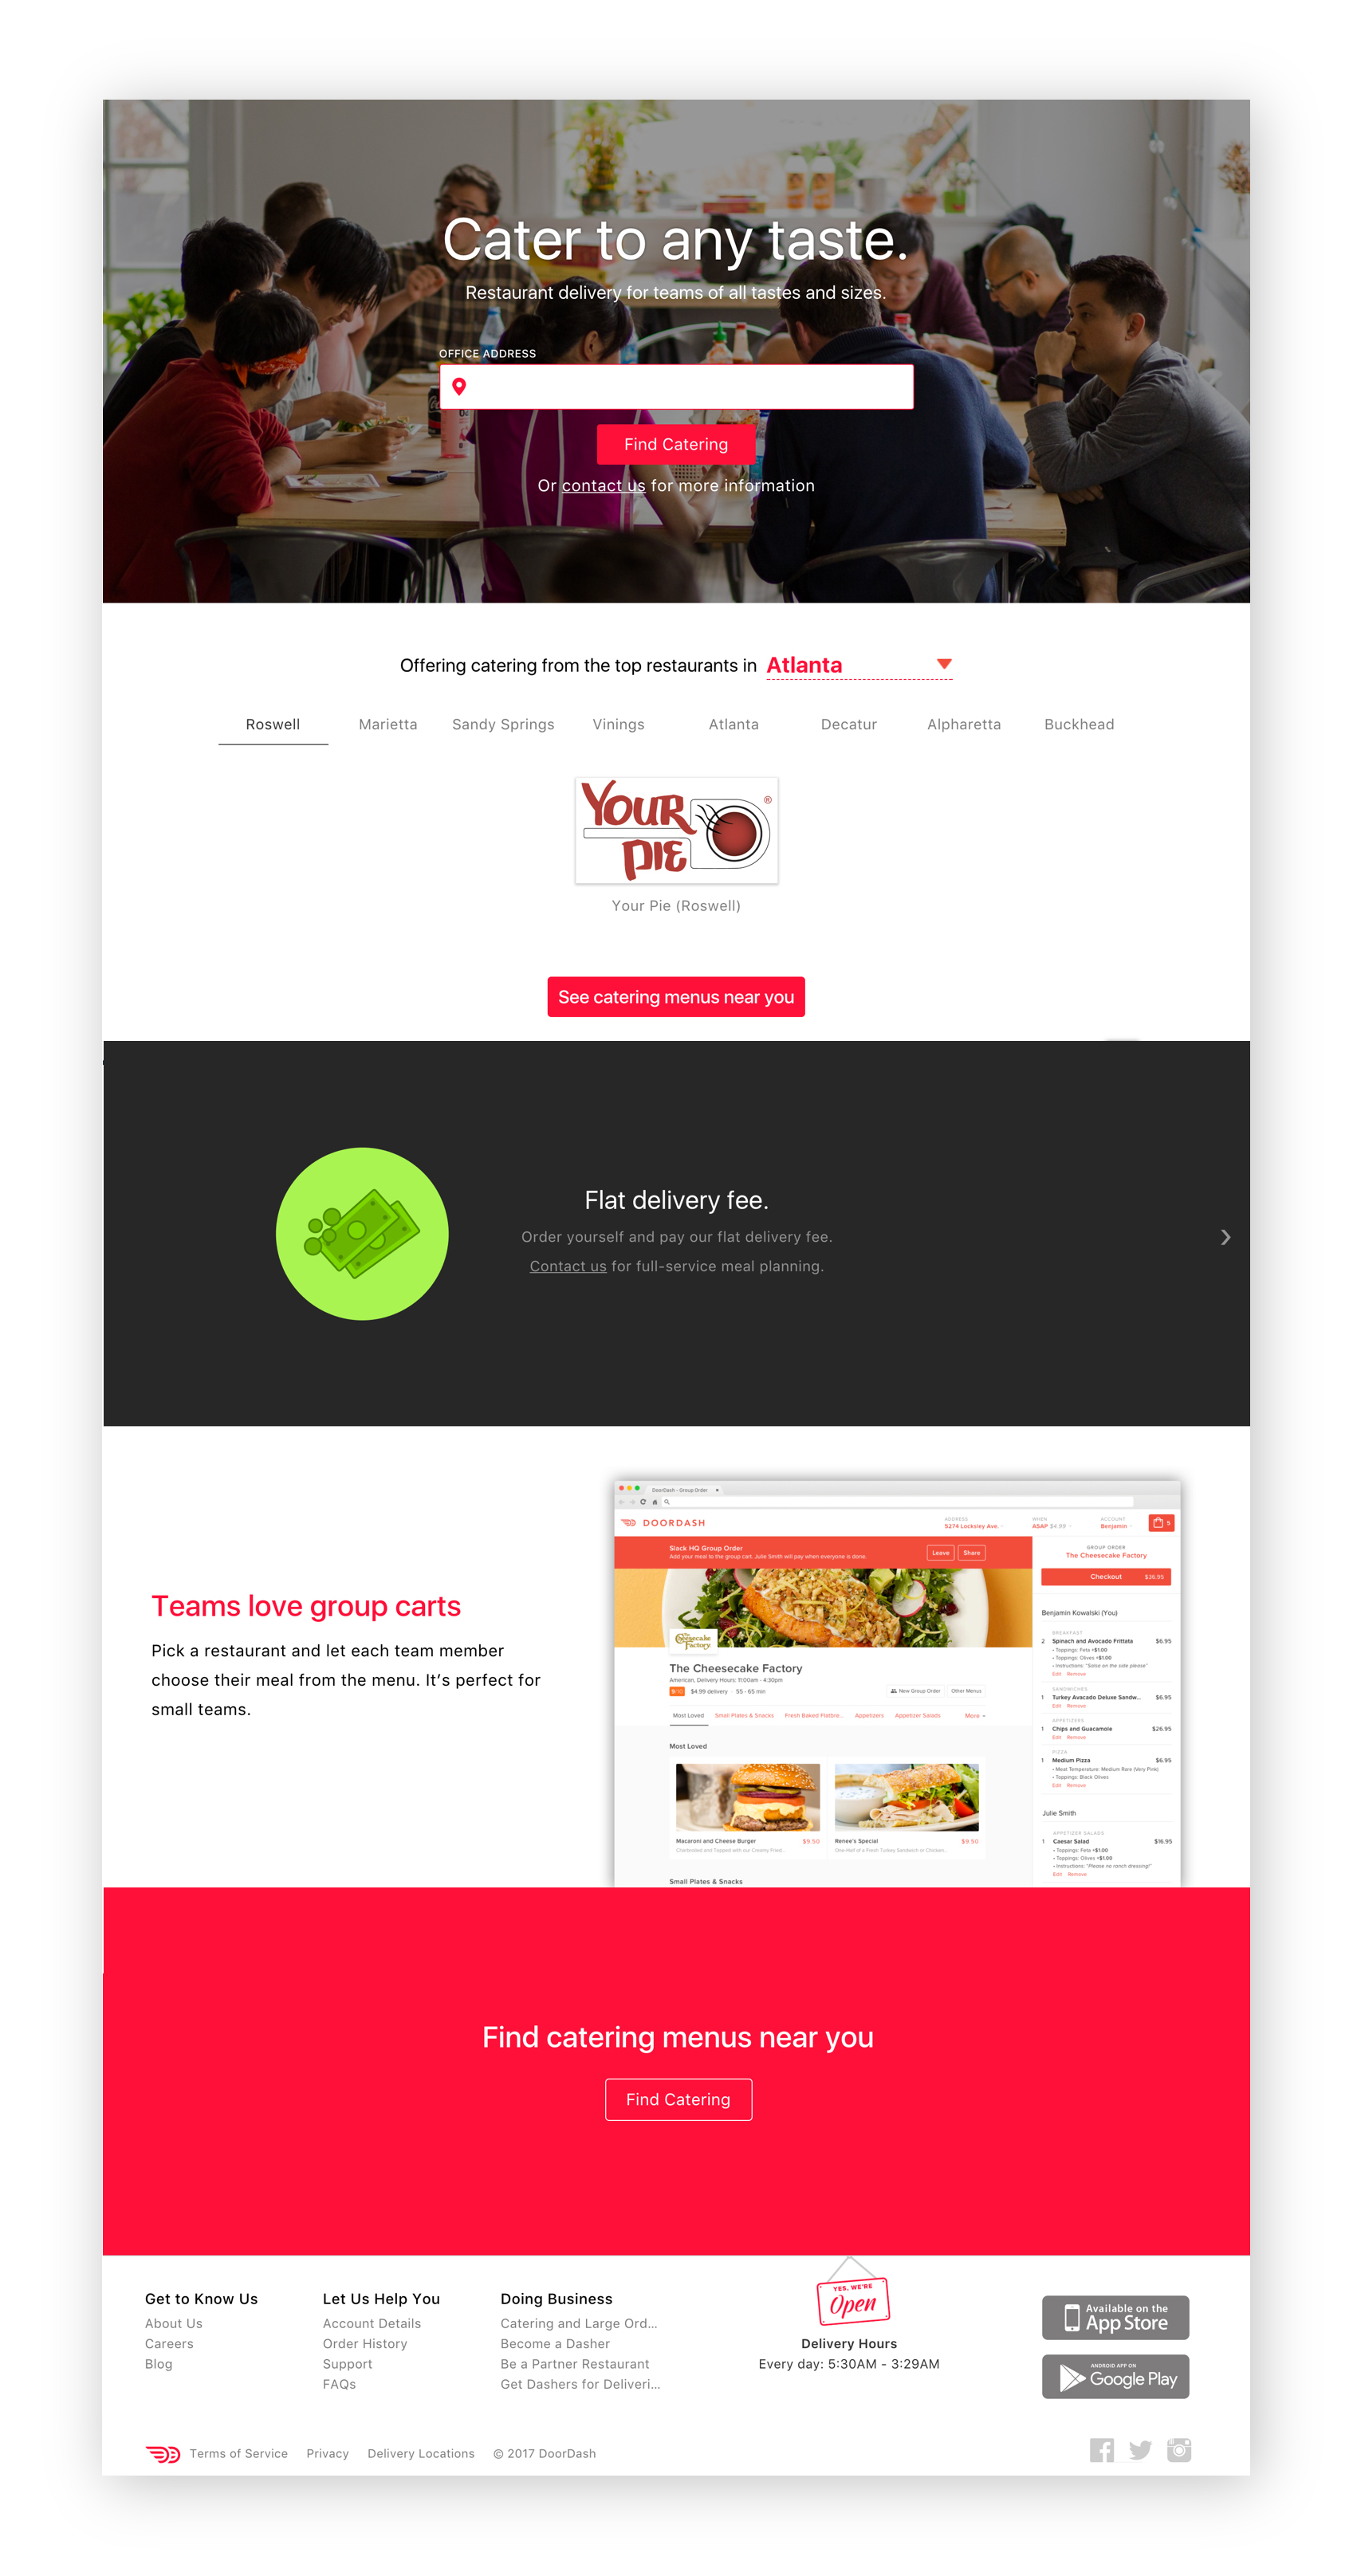 Previous DoorDash for Business Homepage - As you can see on the left, the homepage was incredibly lackluster. Below, I detail some elements that make the design not very user-friendly nor scalable.1.